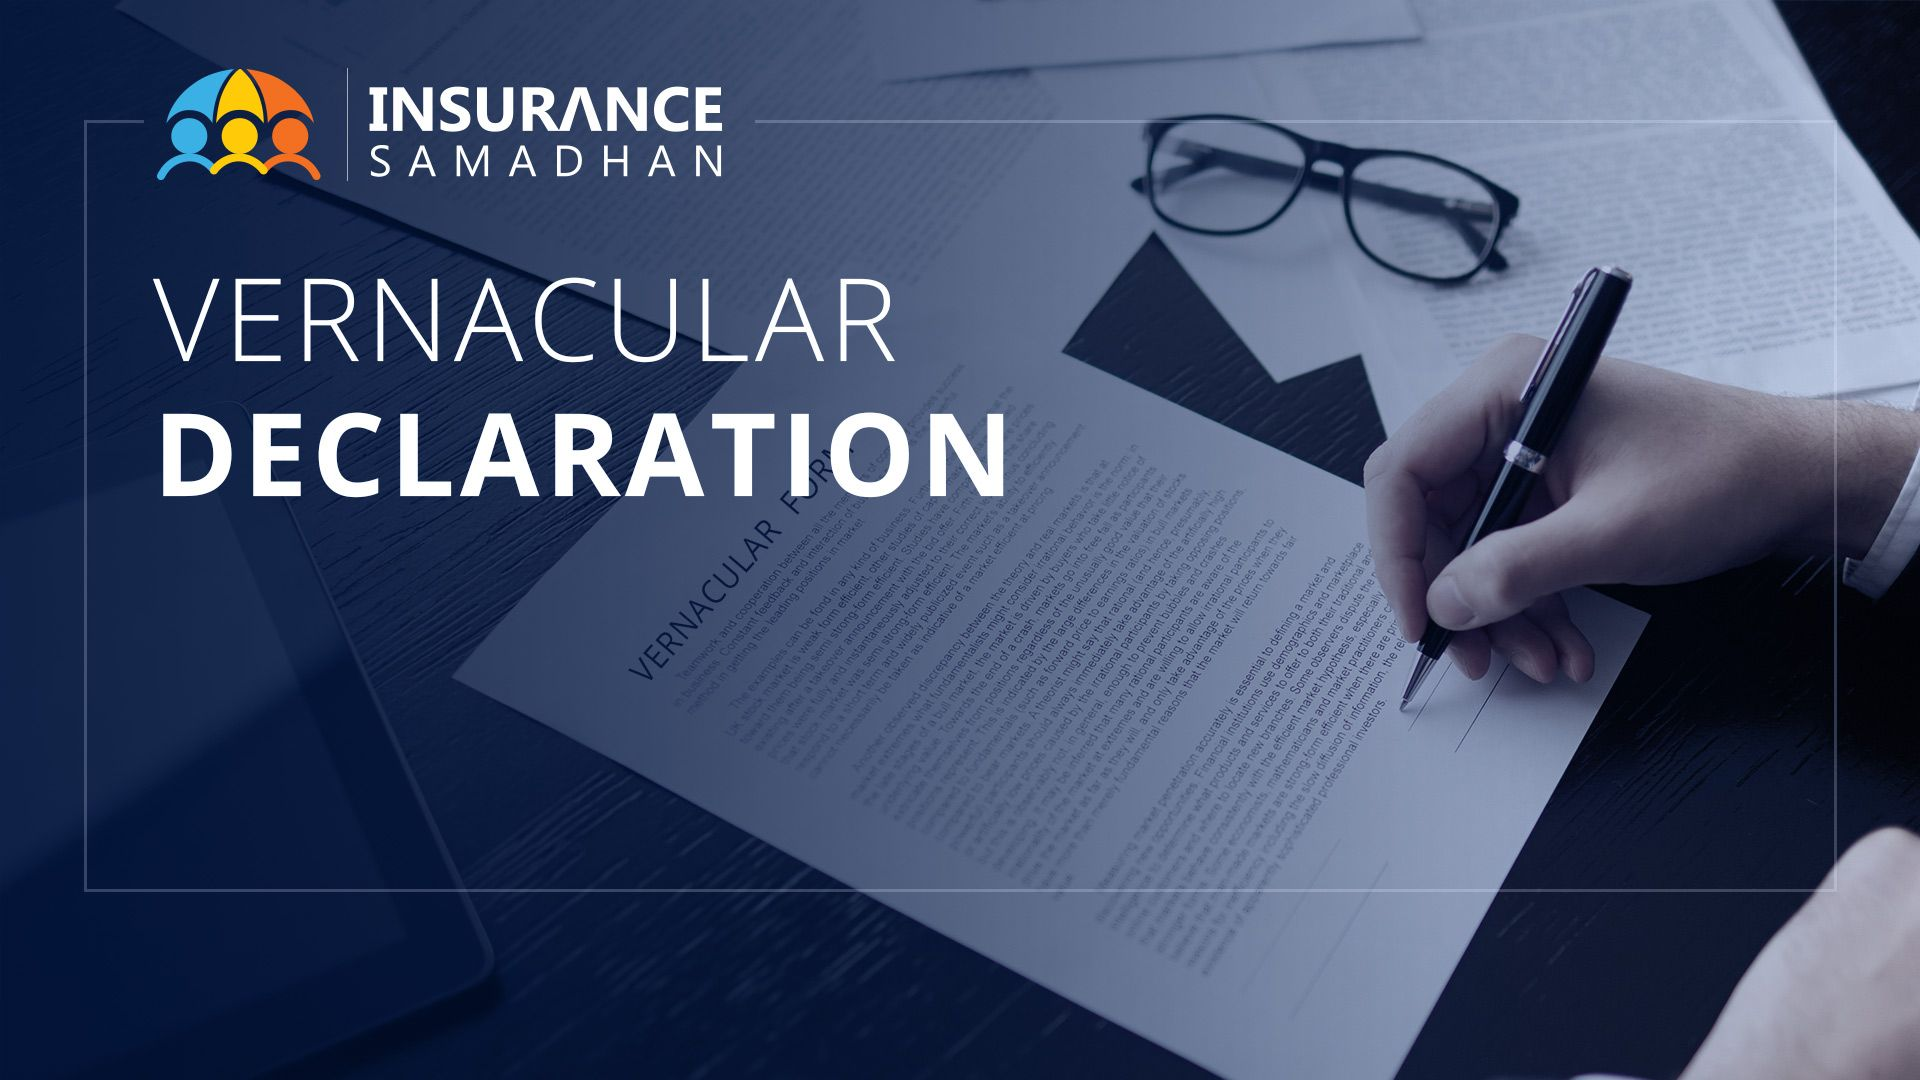 Vernacular Declaration to protect the interest of Policyholders